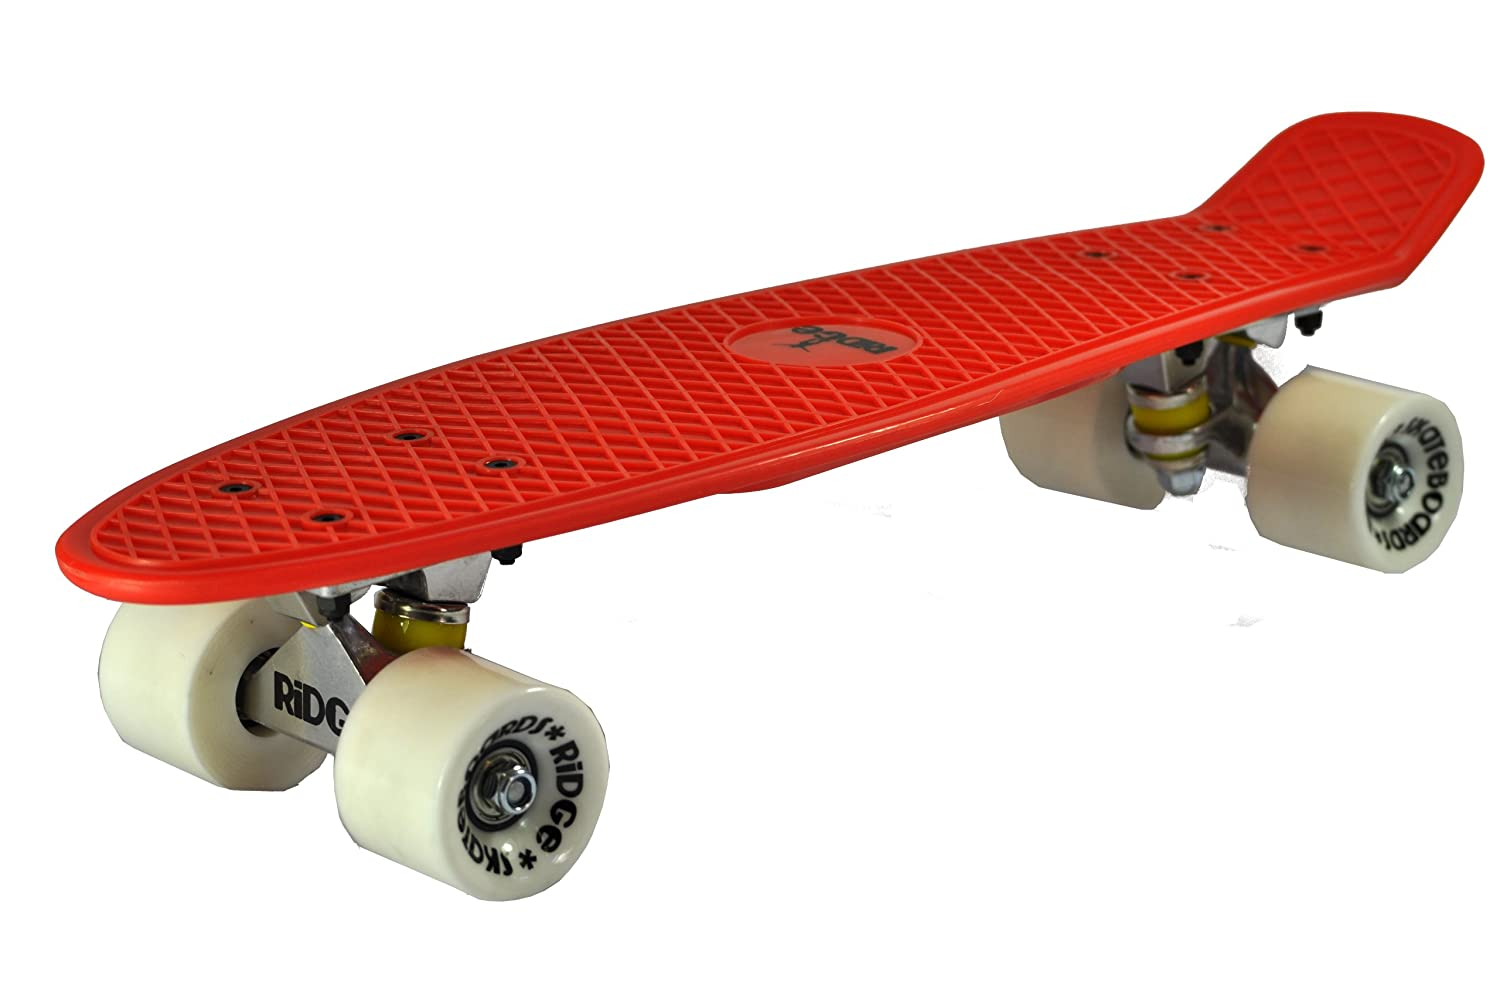 Ridge Original Retro Cruiser Skateboard, Unisex, Rojo/Blanco, 58 cm: Amazon.es: Deportes y aire libre